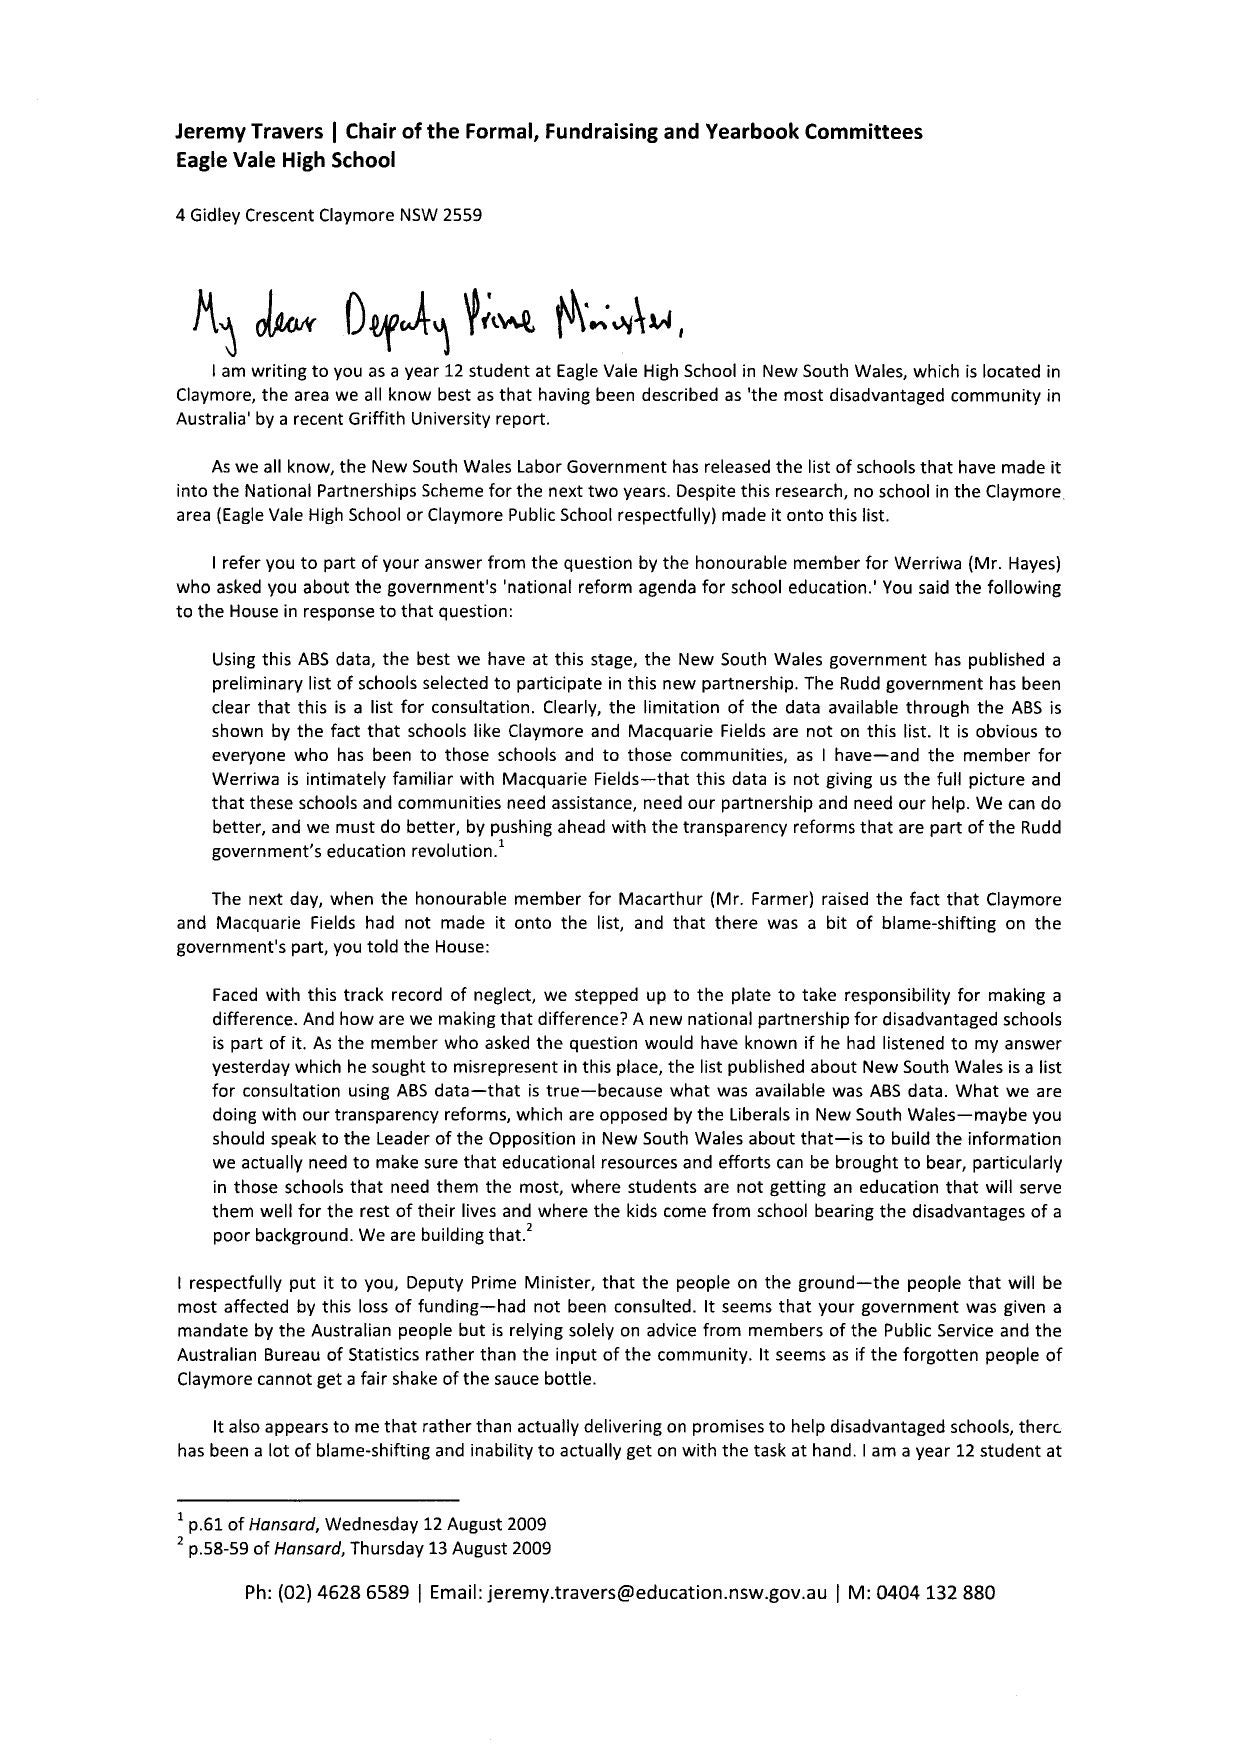 Correspondence to the Deputy Prime Minister by Jeremy Travers - issuu